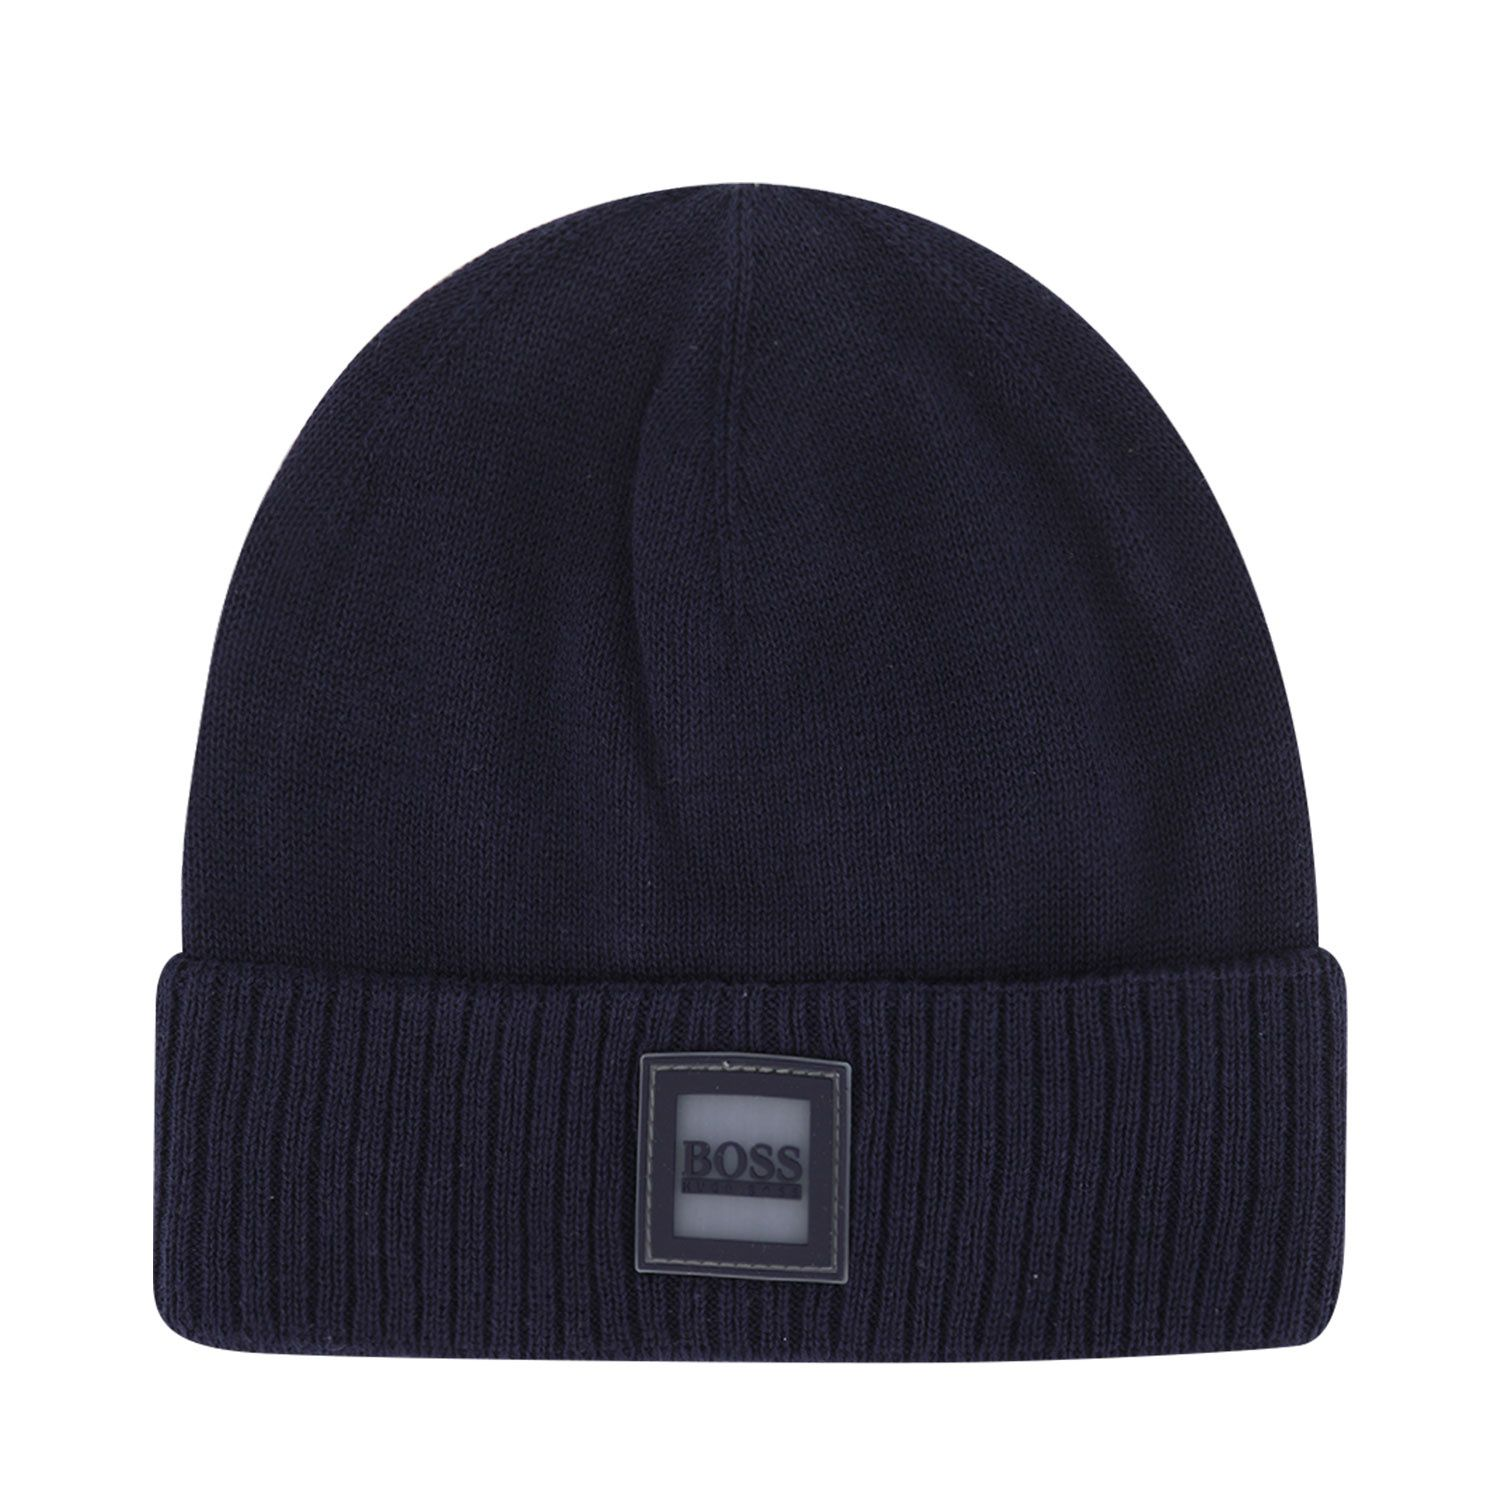 Picture of Boss J01120 baby hat navy